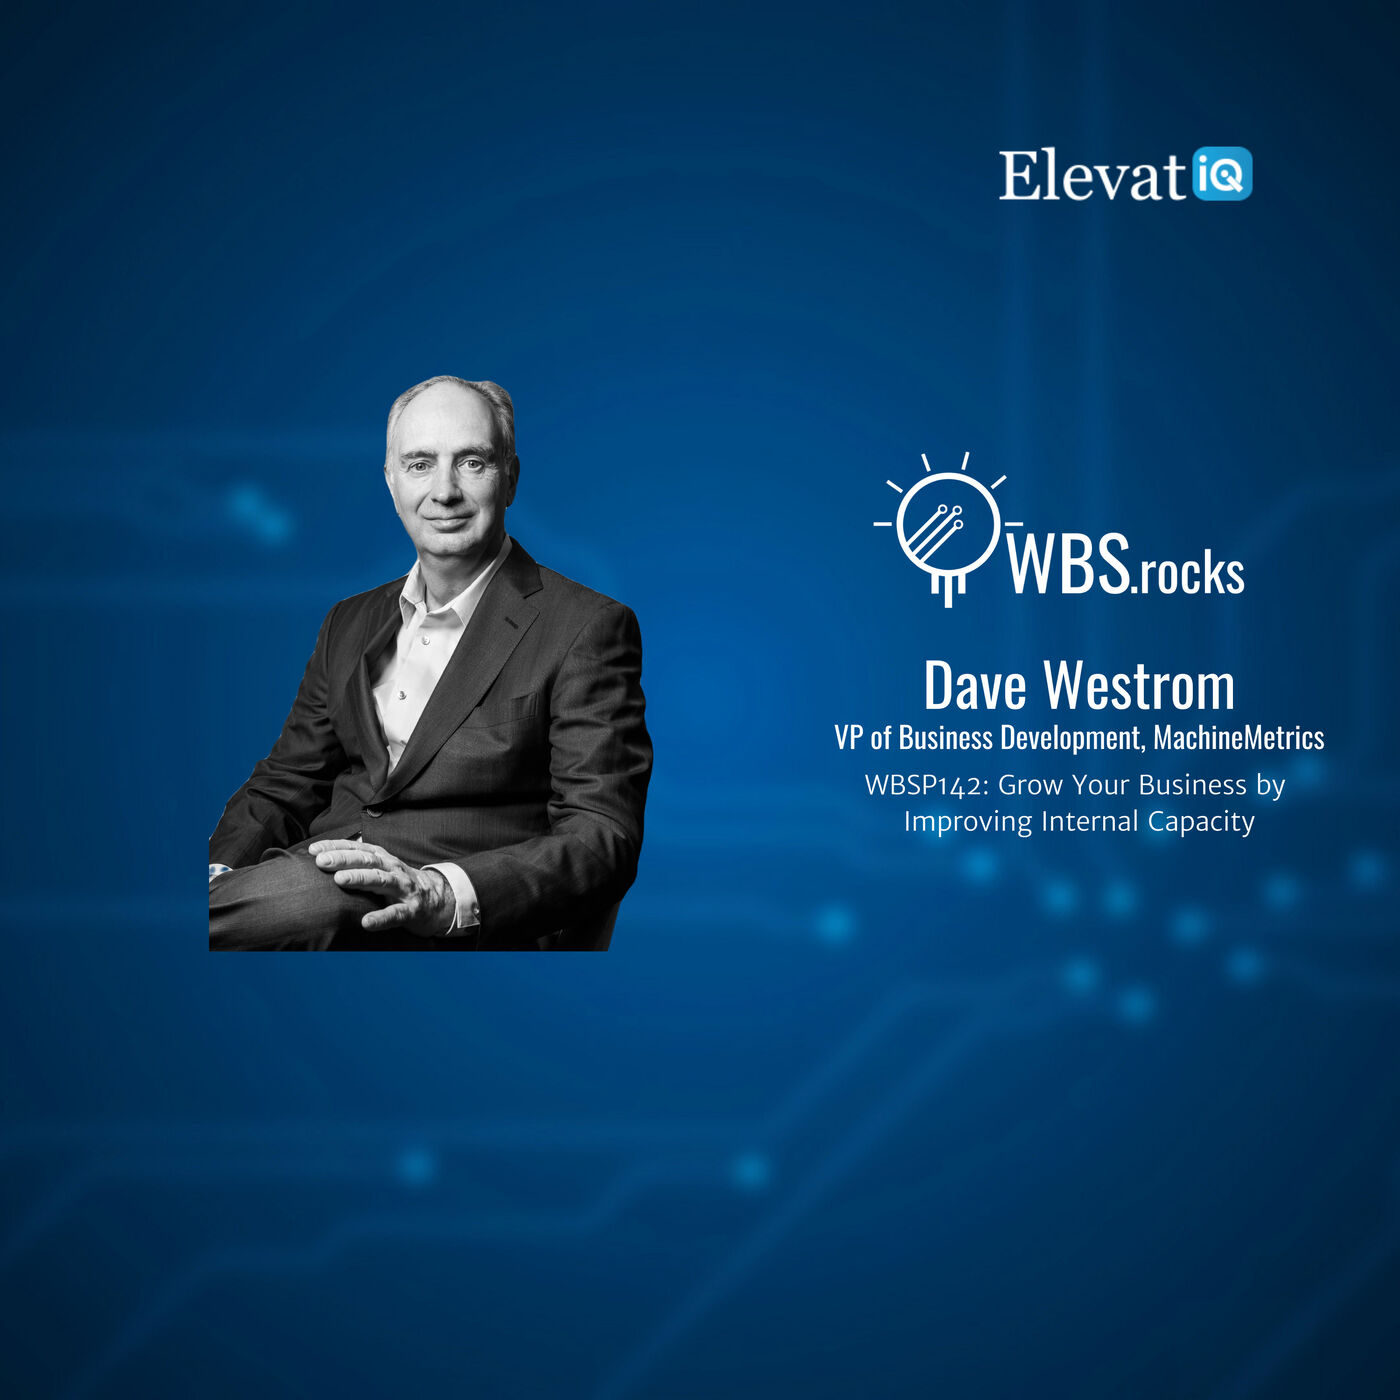 WBSP142: Grow Your Business by Improving Internal Capacity w/ Dave Westrom